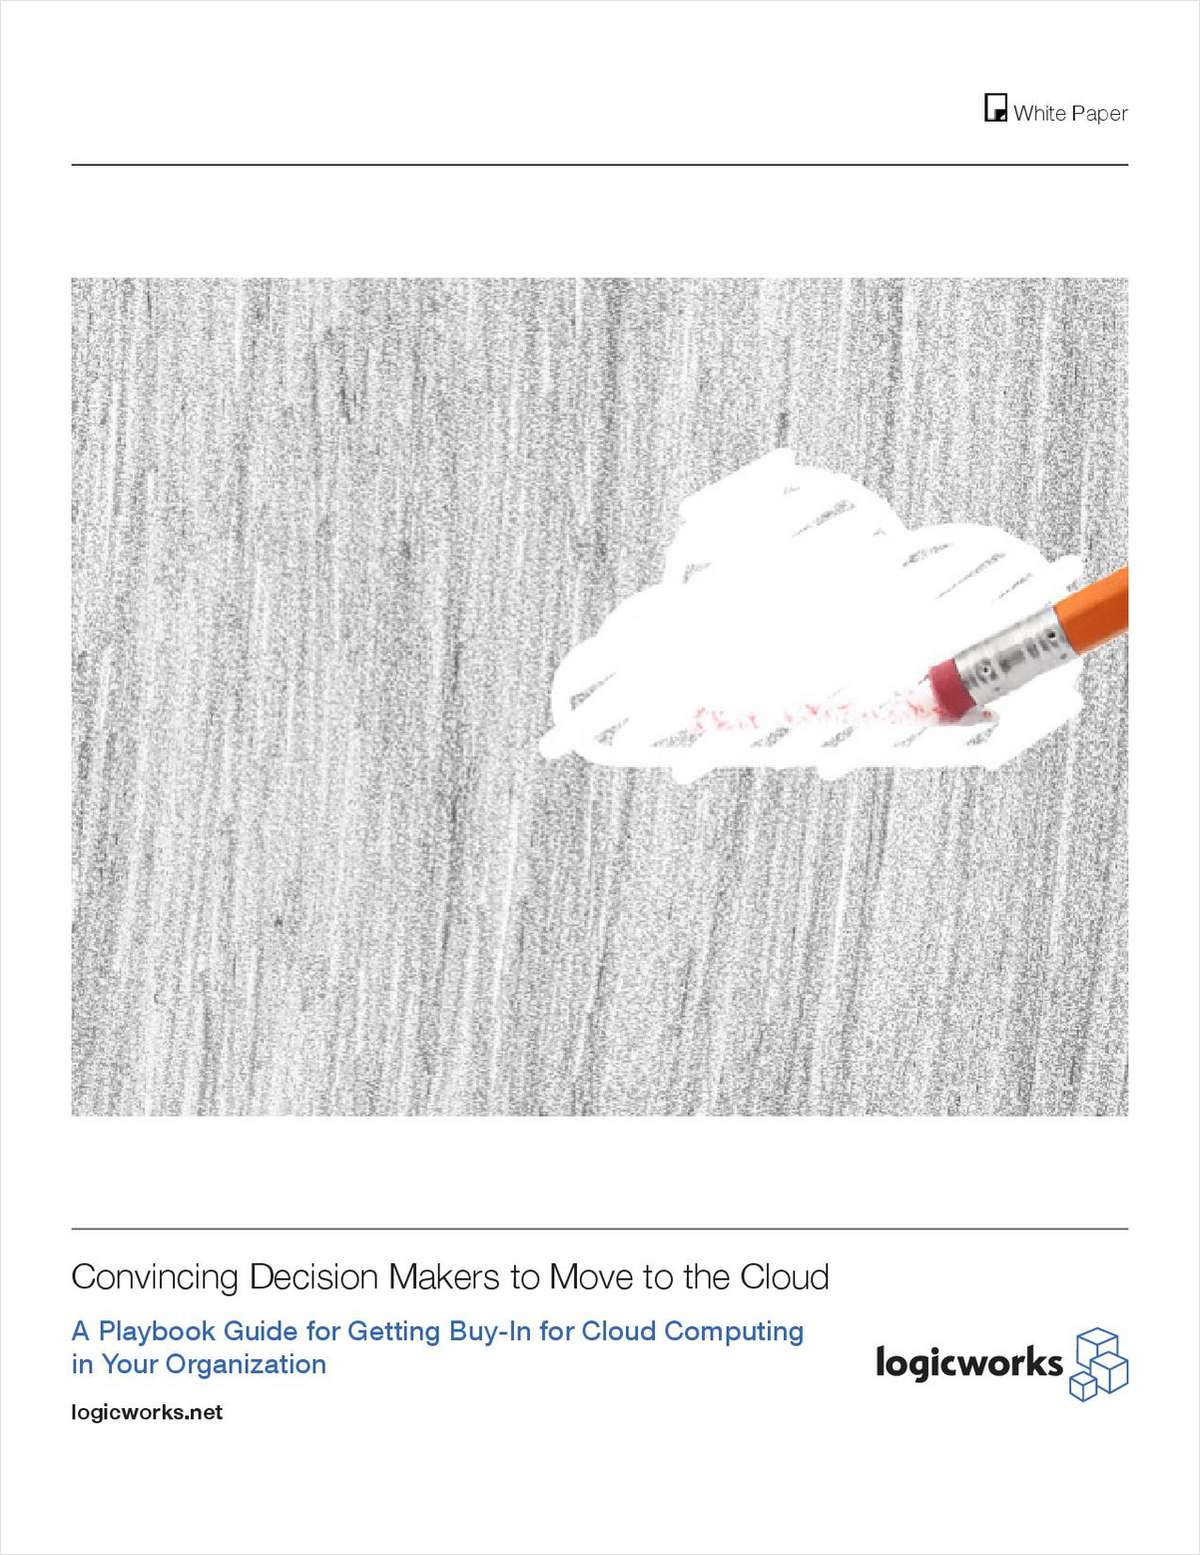 Convincing Decision Makers to Move to the Cloud